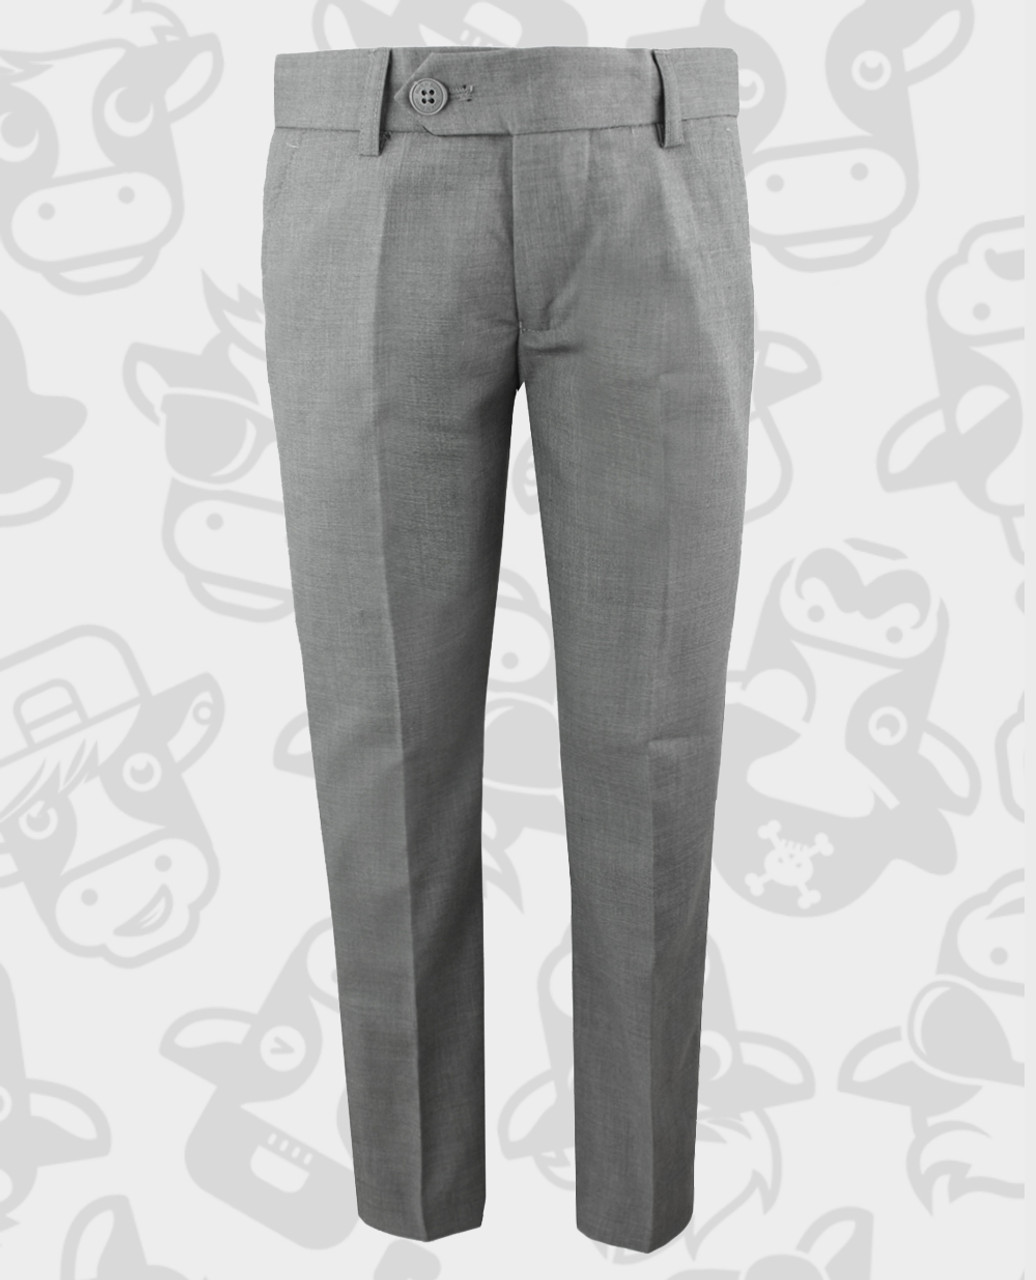 c14bc83d13492d Black n Bianco First Class Slim Fit Flat Front Trousers in Rustic Gray